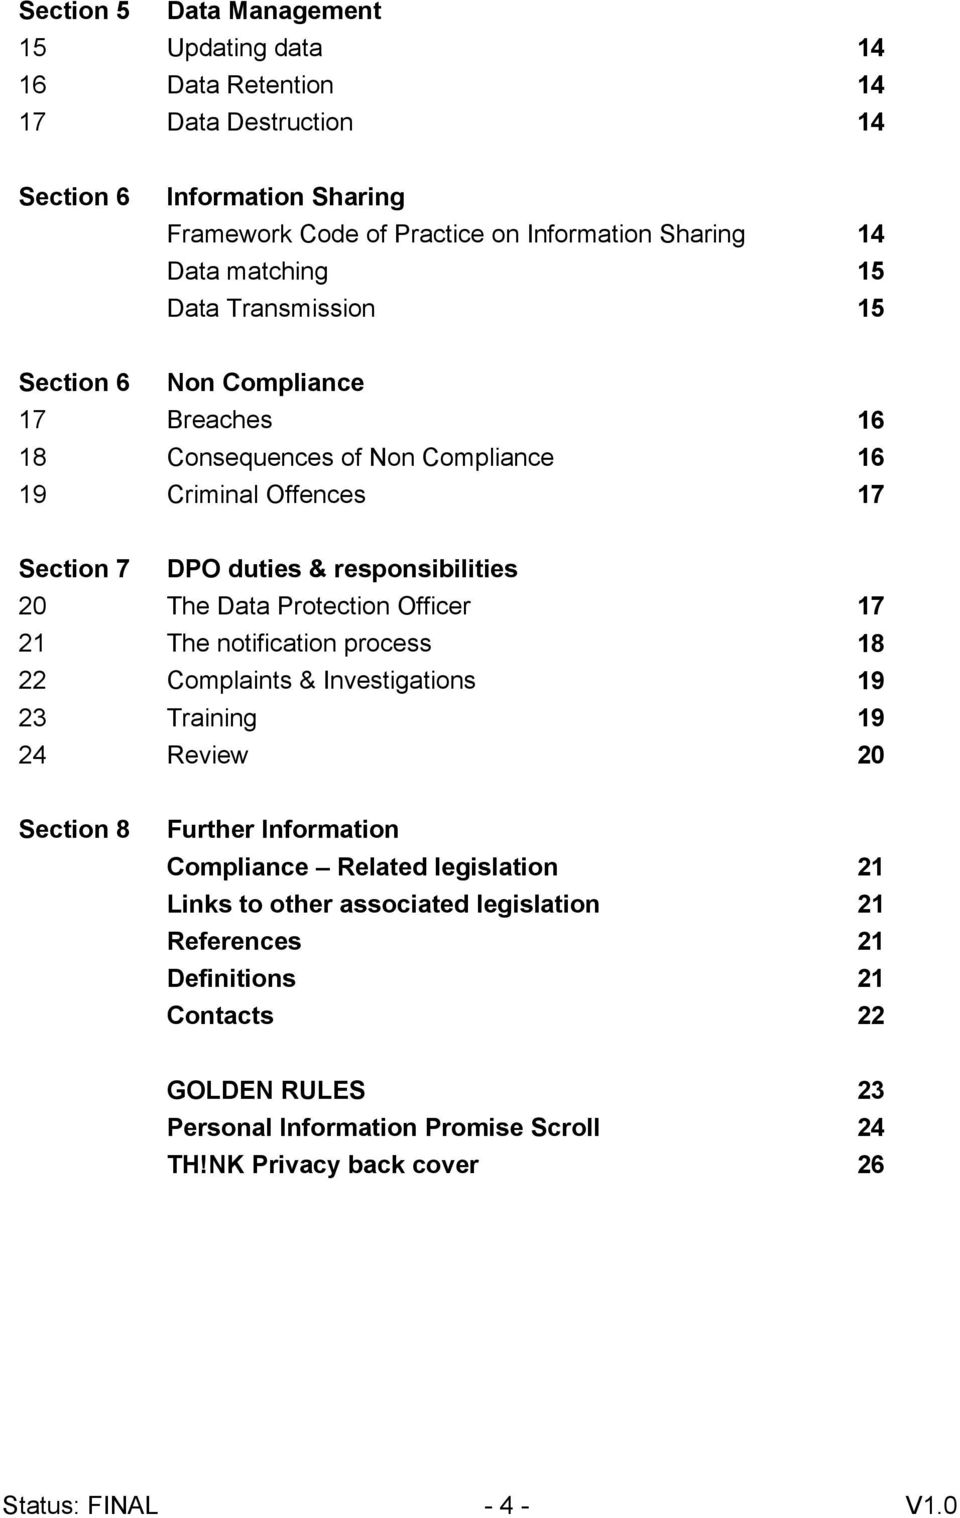 Data Protection Officer 17 21 The notification process 18 22 Complaints & Investigations 19 23 Training 19 24 Review 20 Section 8 Further Information Compliance Related legislation